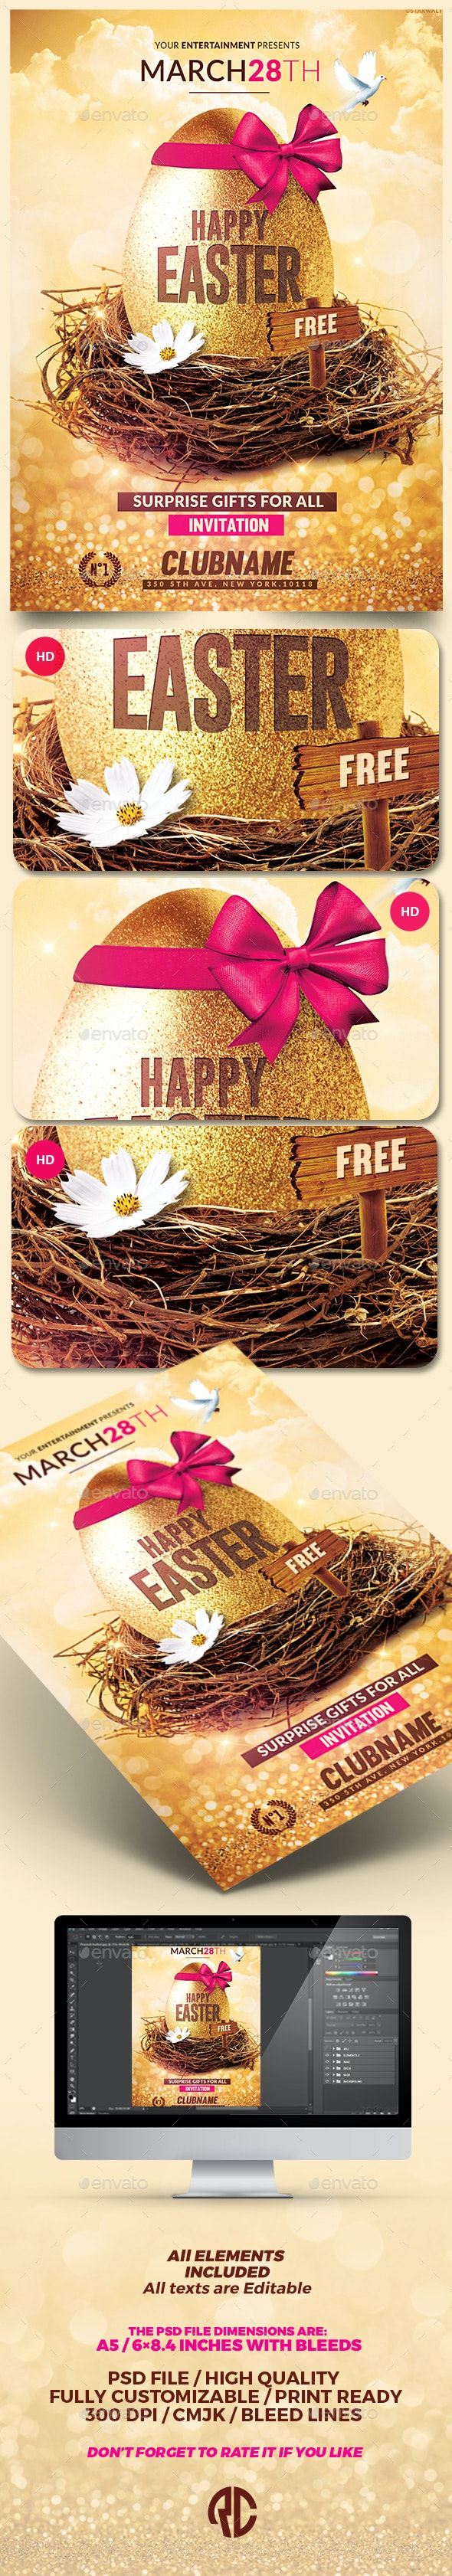 Happy Easter   Flyer Psd Template - Events Flyers